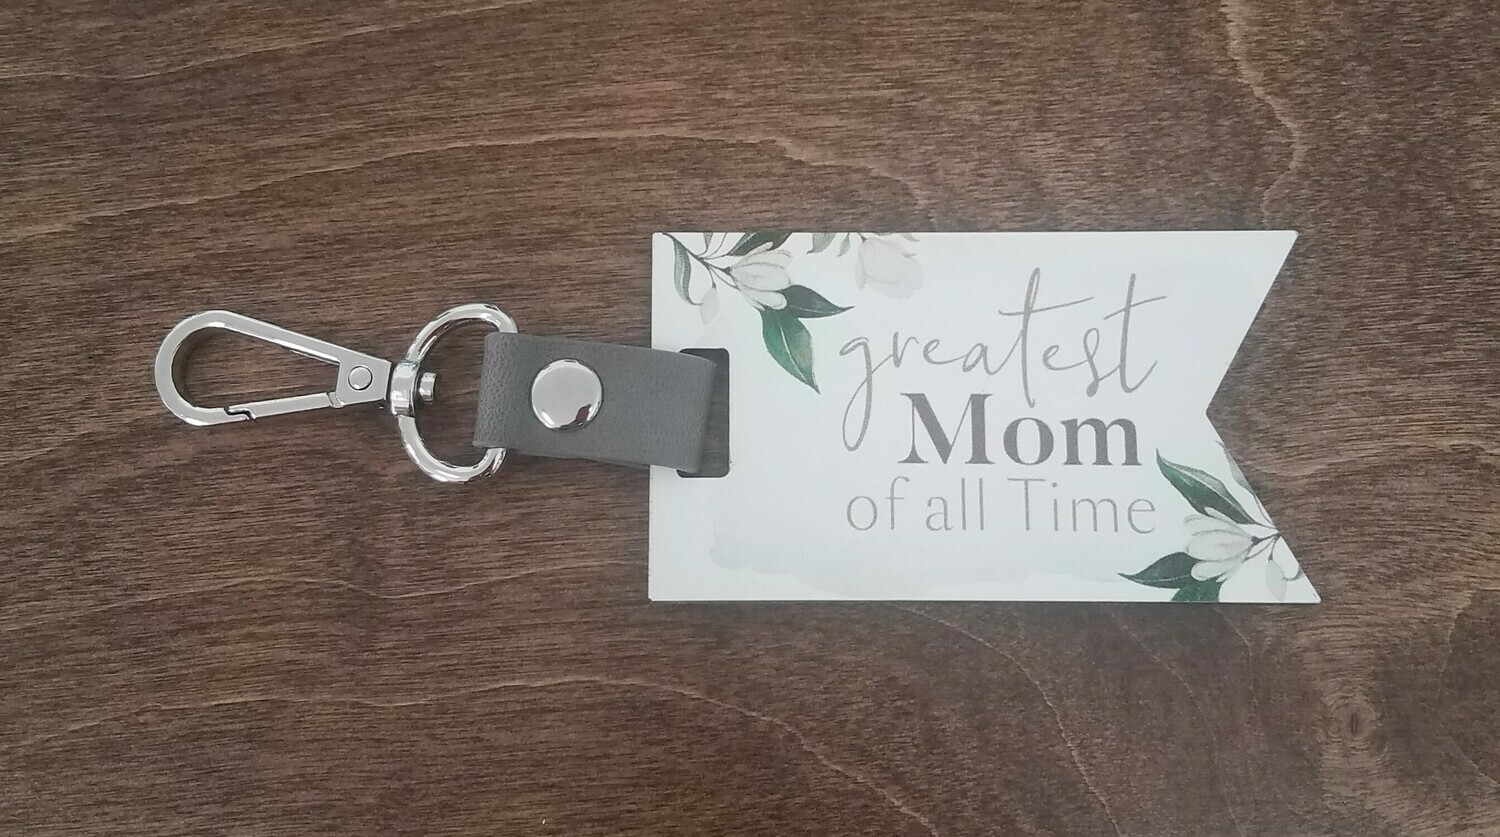 Greatest Mom of all Time Key Chain